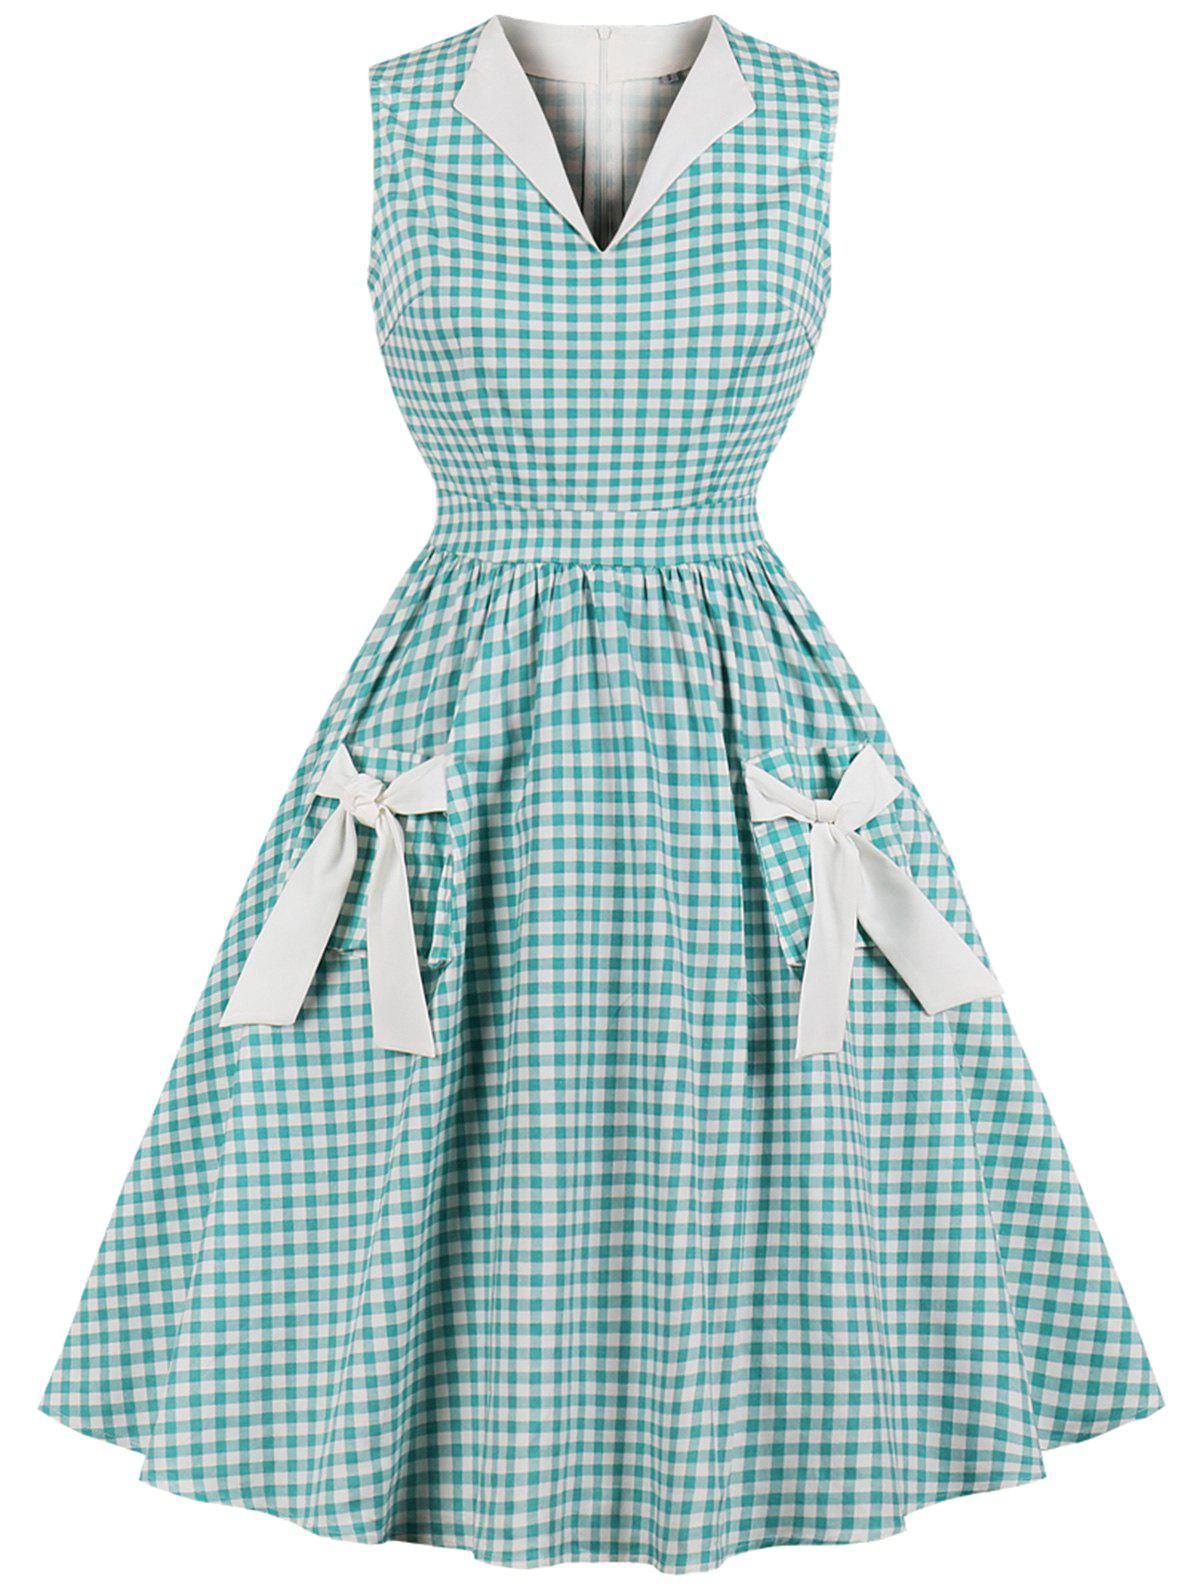 Buy Vintage Gingham Bowknot Pin Up Dress